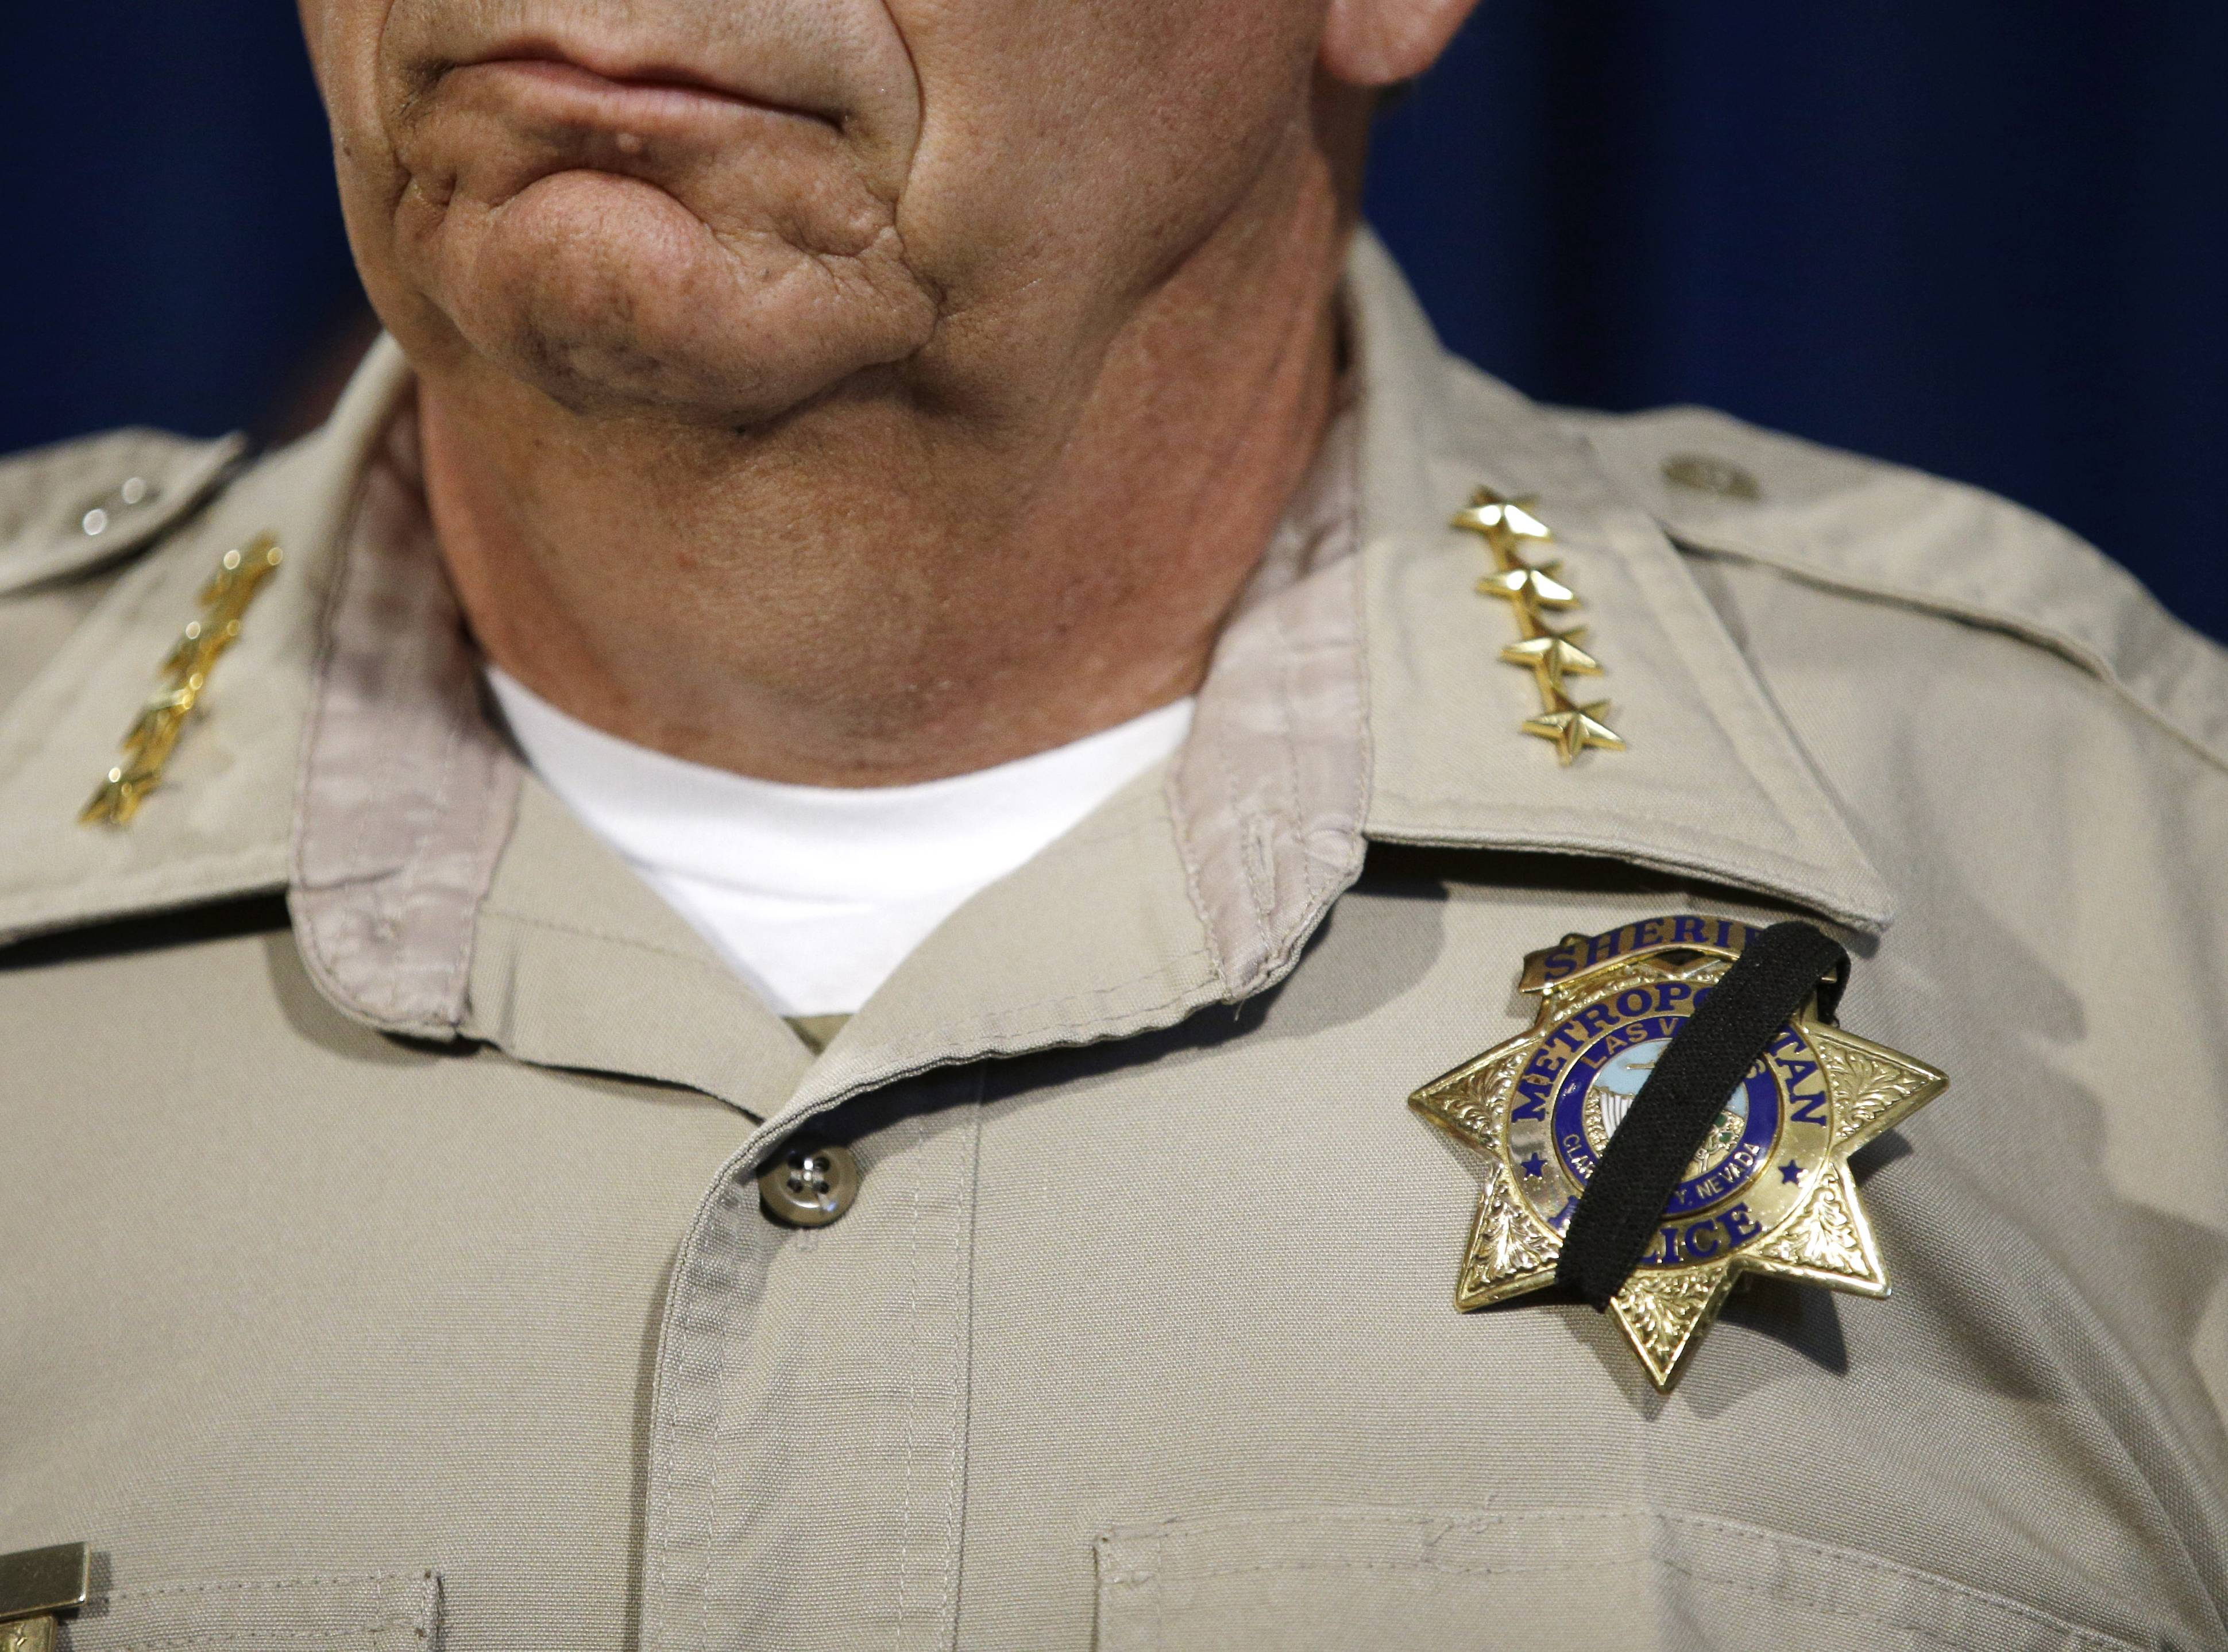 Las Vegas Sheriff Doug Gillespie wears a black band across his badge during a news conference, Monday, June 9, 2014, in Las Vegas.